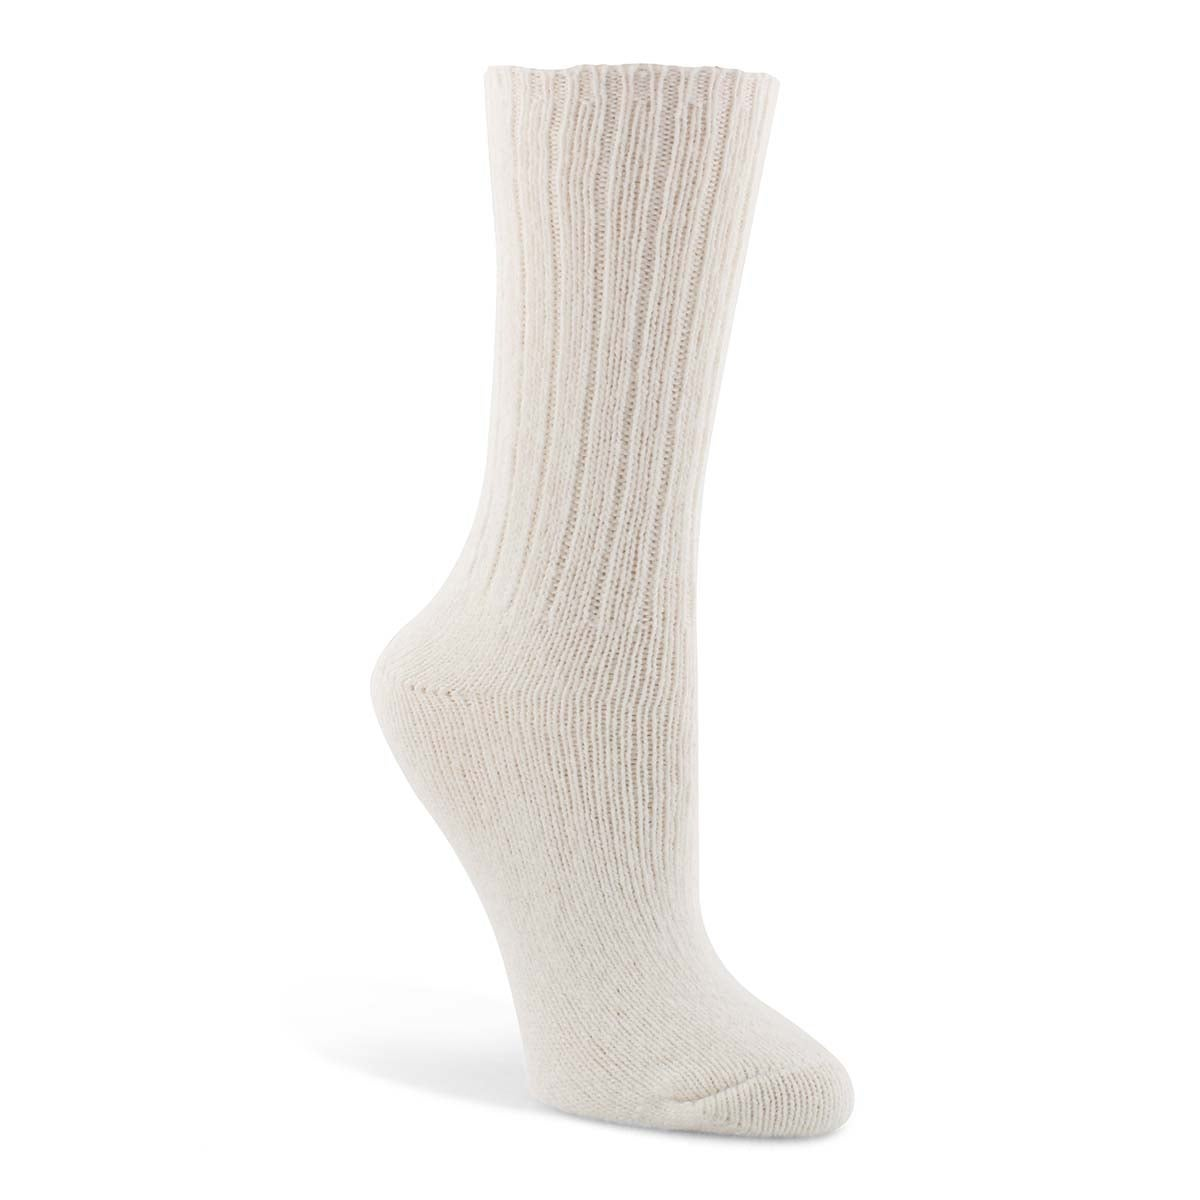 Lds Duray white 3/4 crew sock